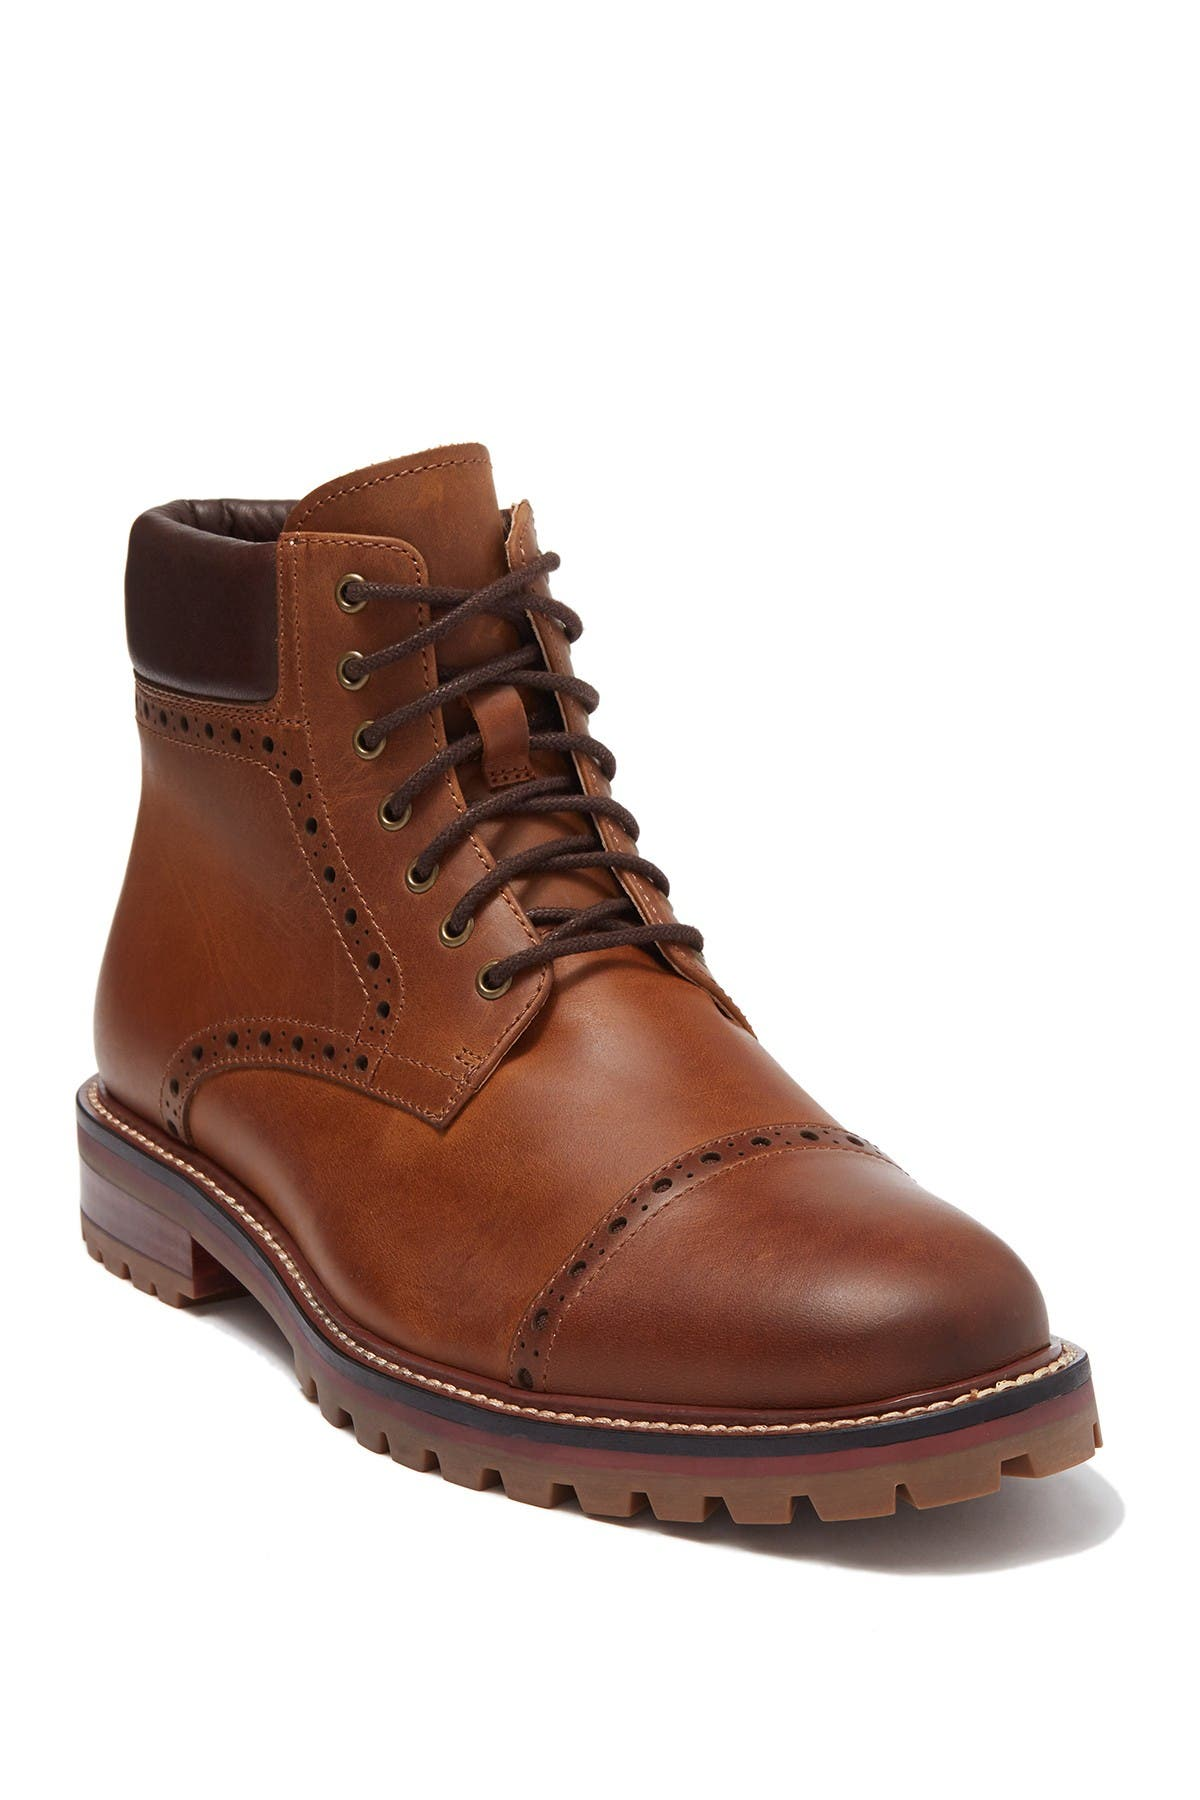 Image of Warfield & Grand Peralta Leather Cap Toe Boot